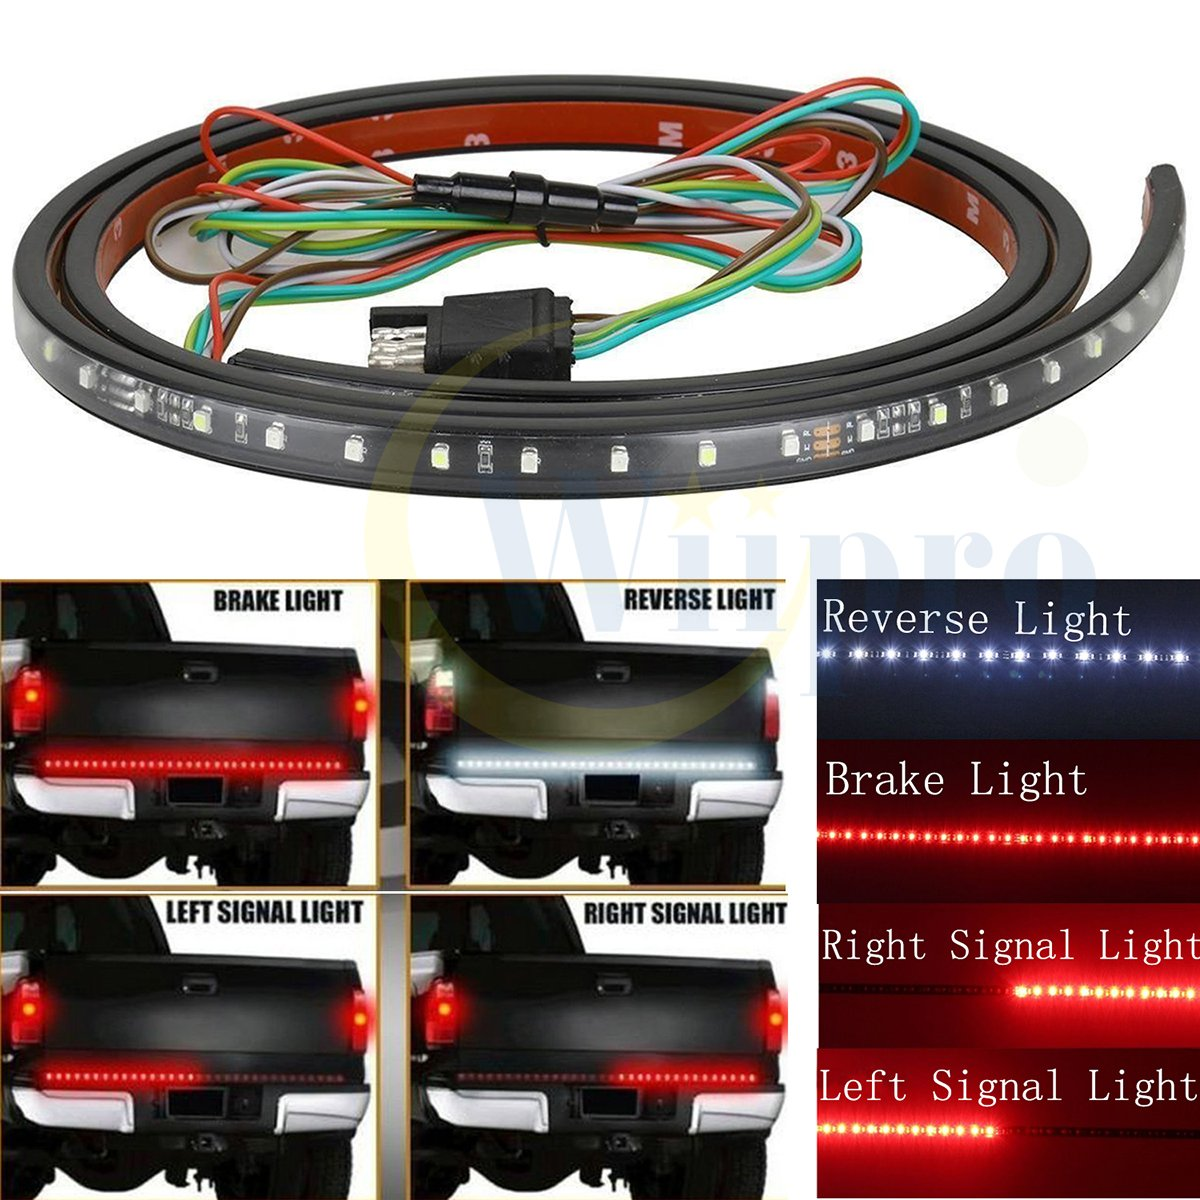 Wiipro 60 Truck Tailgate Light Bar Red White Reverse Dodge Ram Wiring Diagram Trailer Brake Turn Signals For Pickup Suv Ford Gmc Toyota 4x4 Chevy Chevrolet